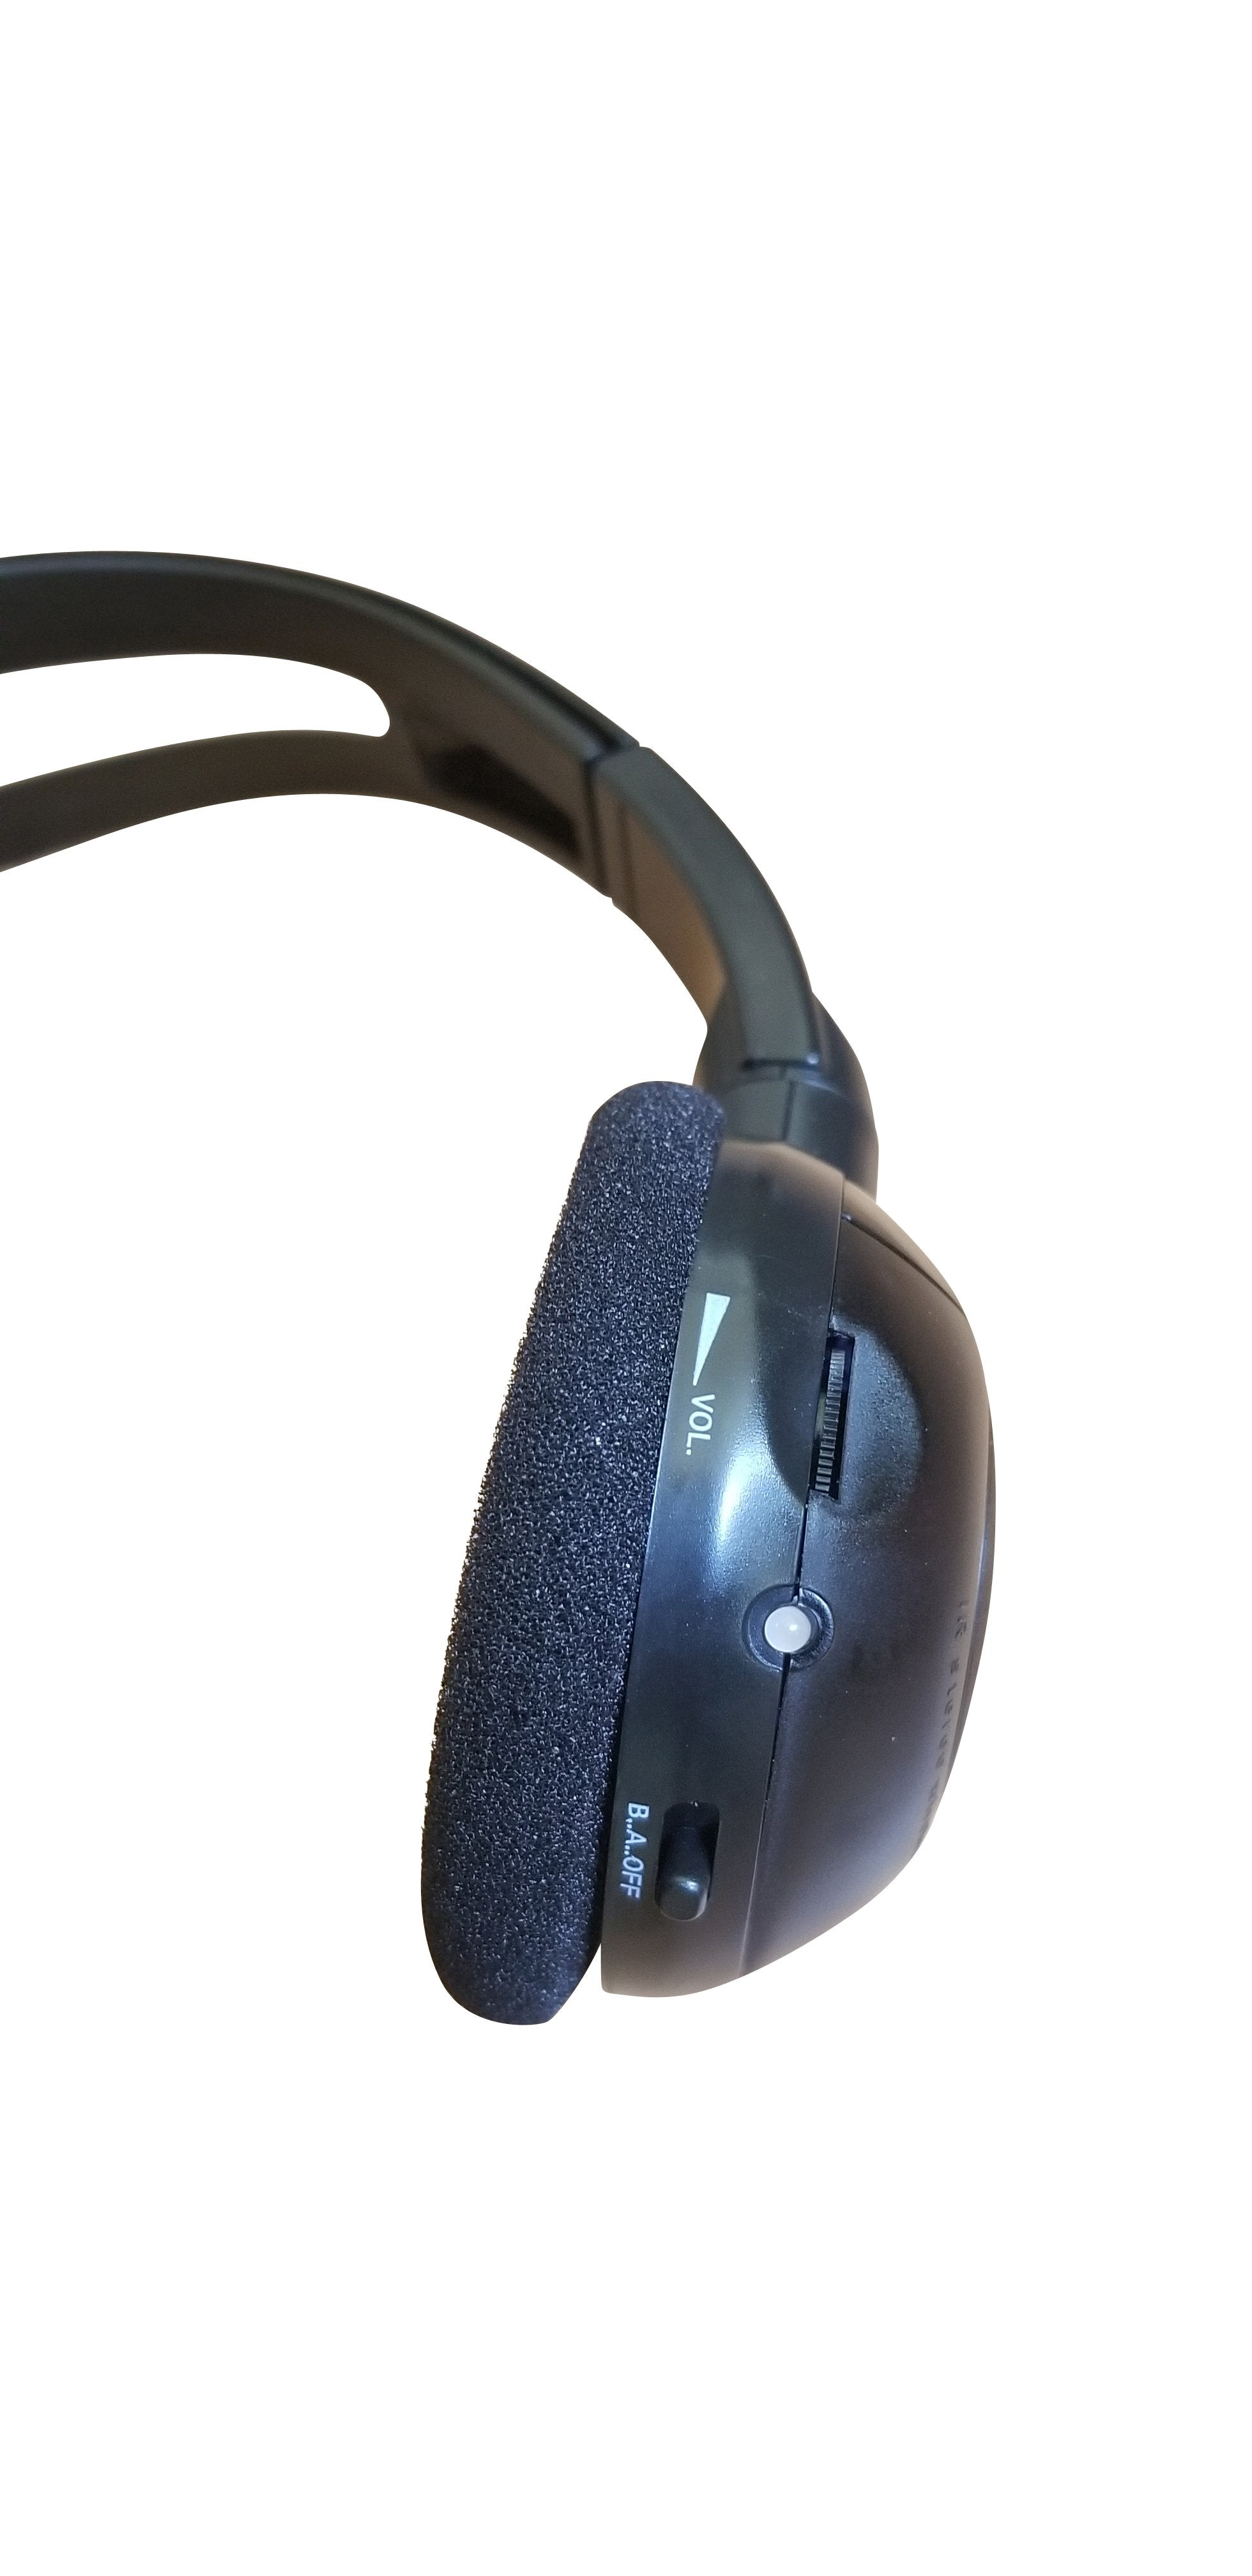 2010 Chevy Silverado Wireless DVD Headphone